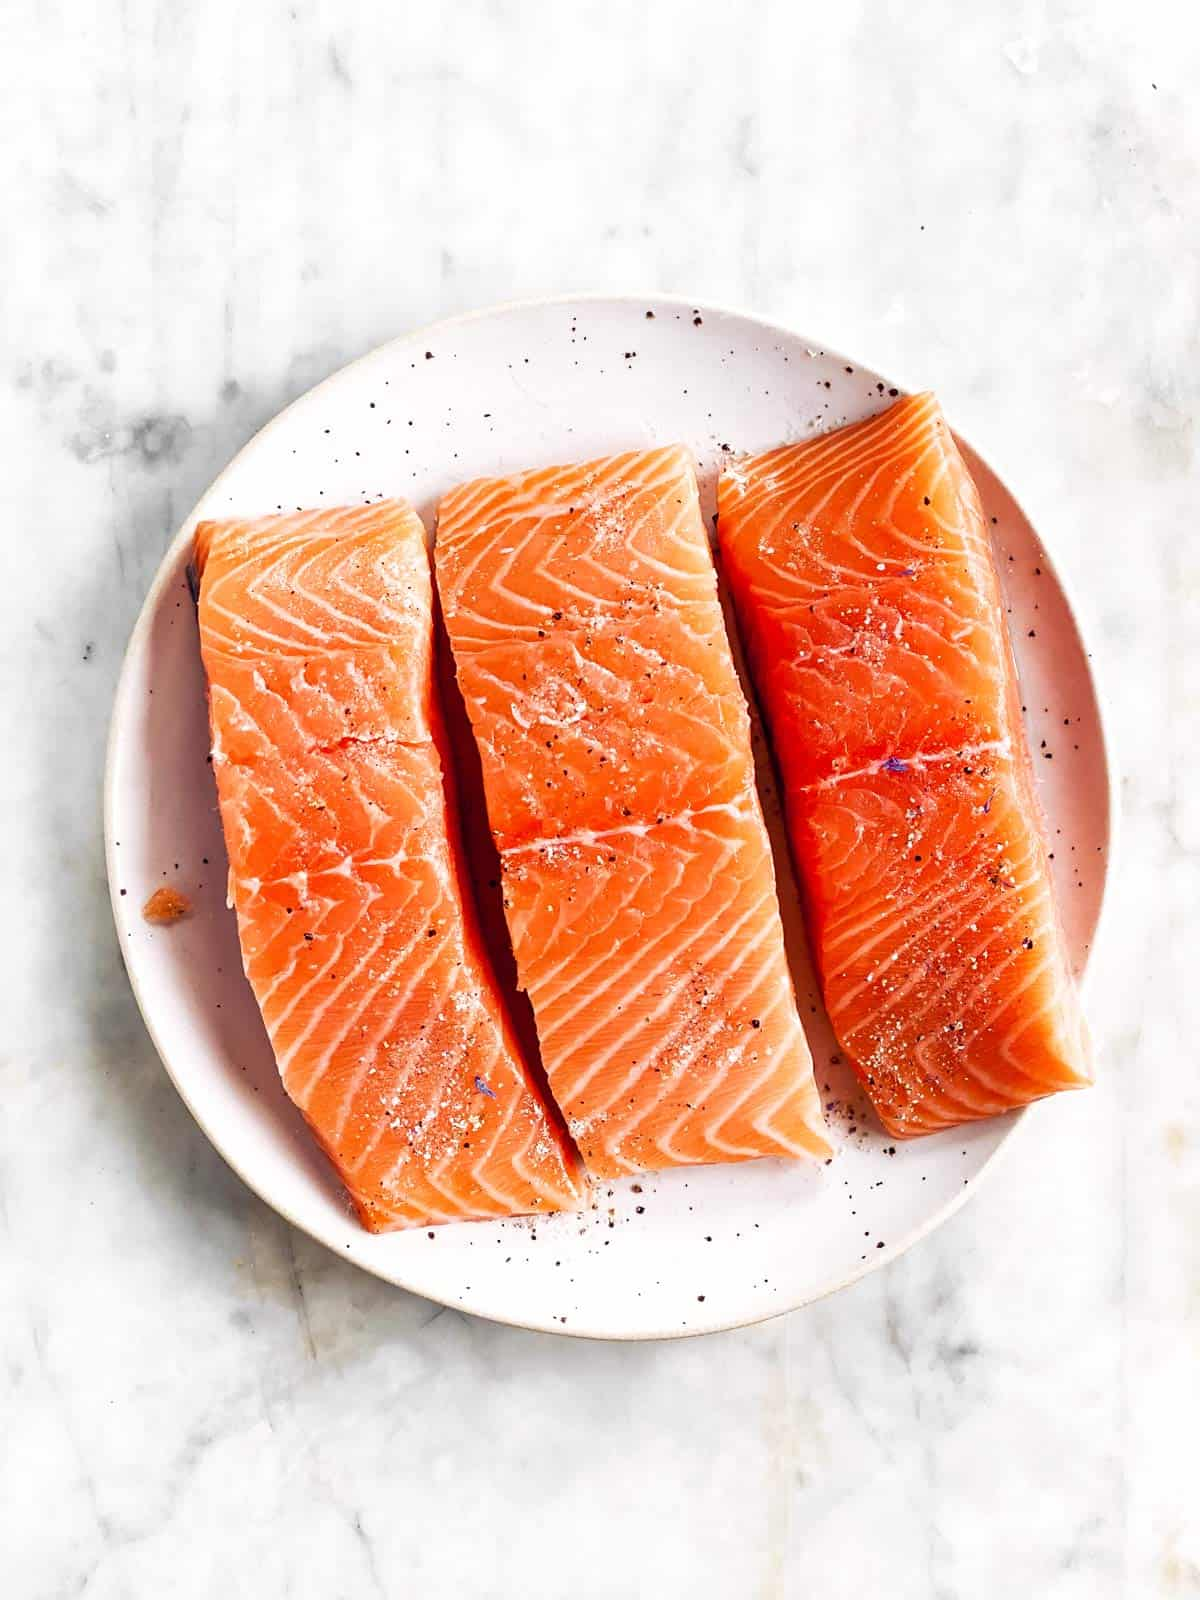 there raw salmon fillets on white plate